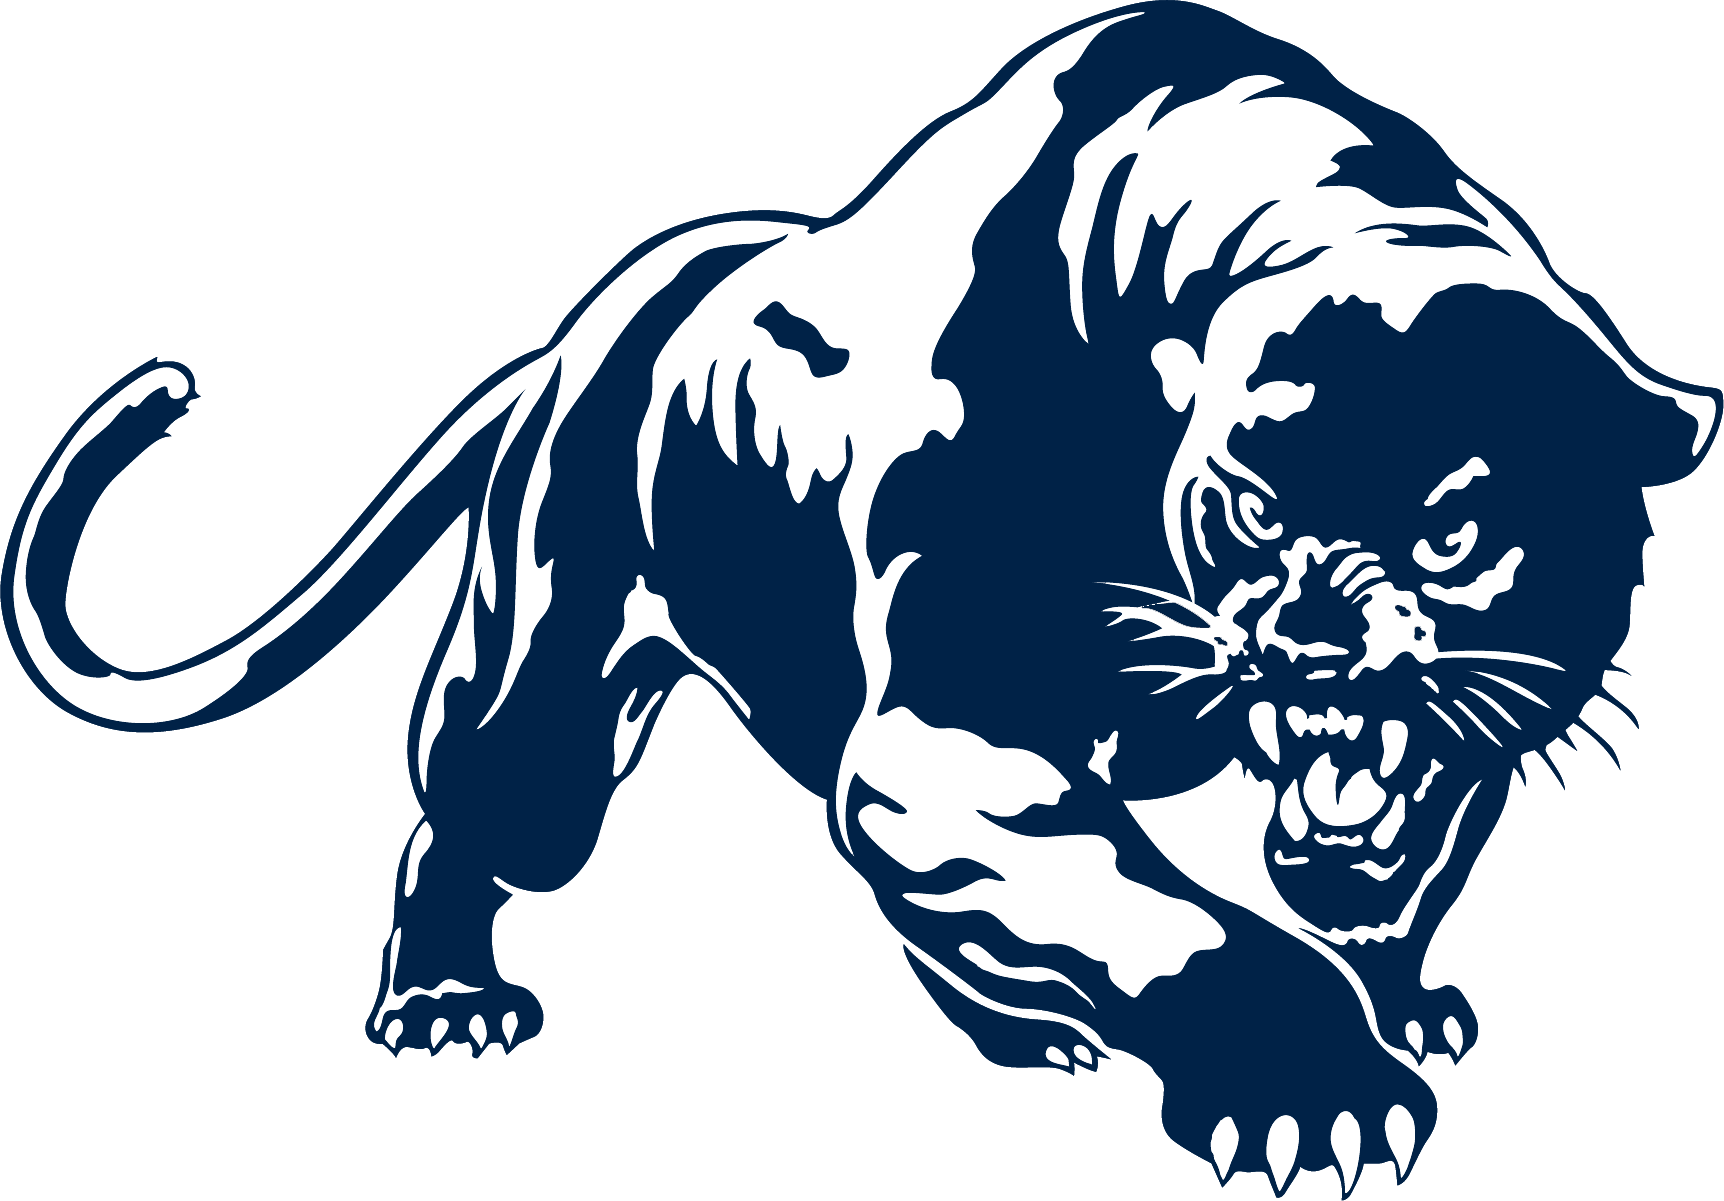 1598754b6 Shadow Ridge Middle School / Home of the Panthers